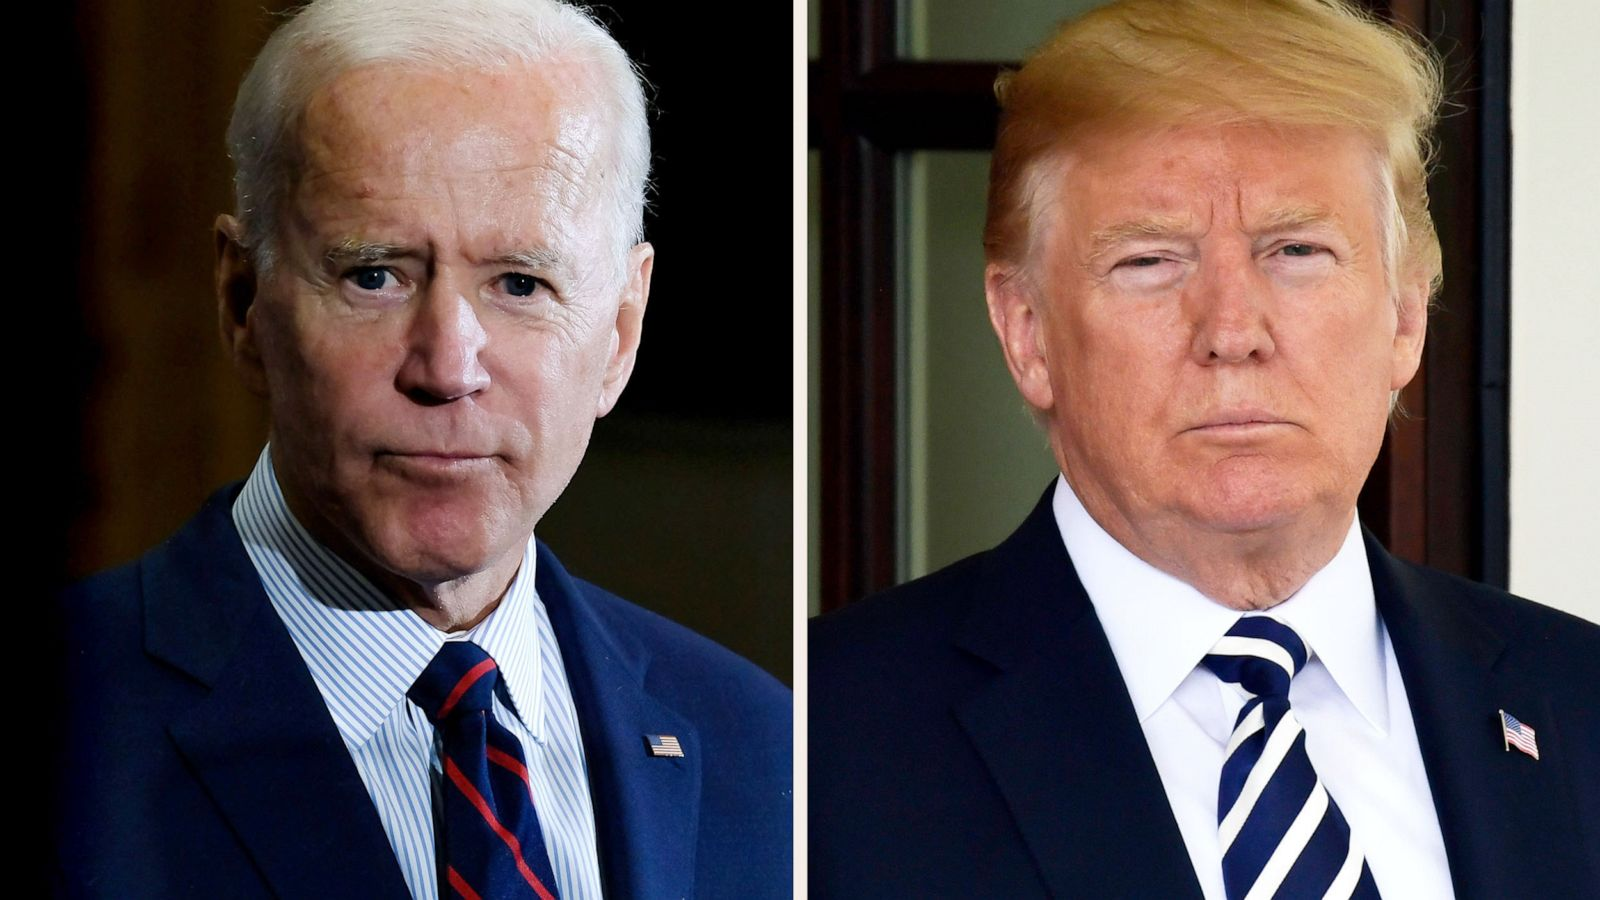 The USA that Trump would bequeath to Biden